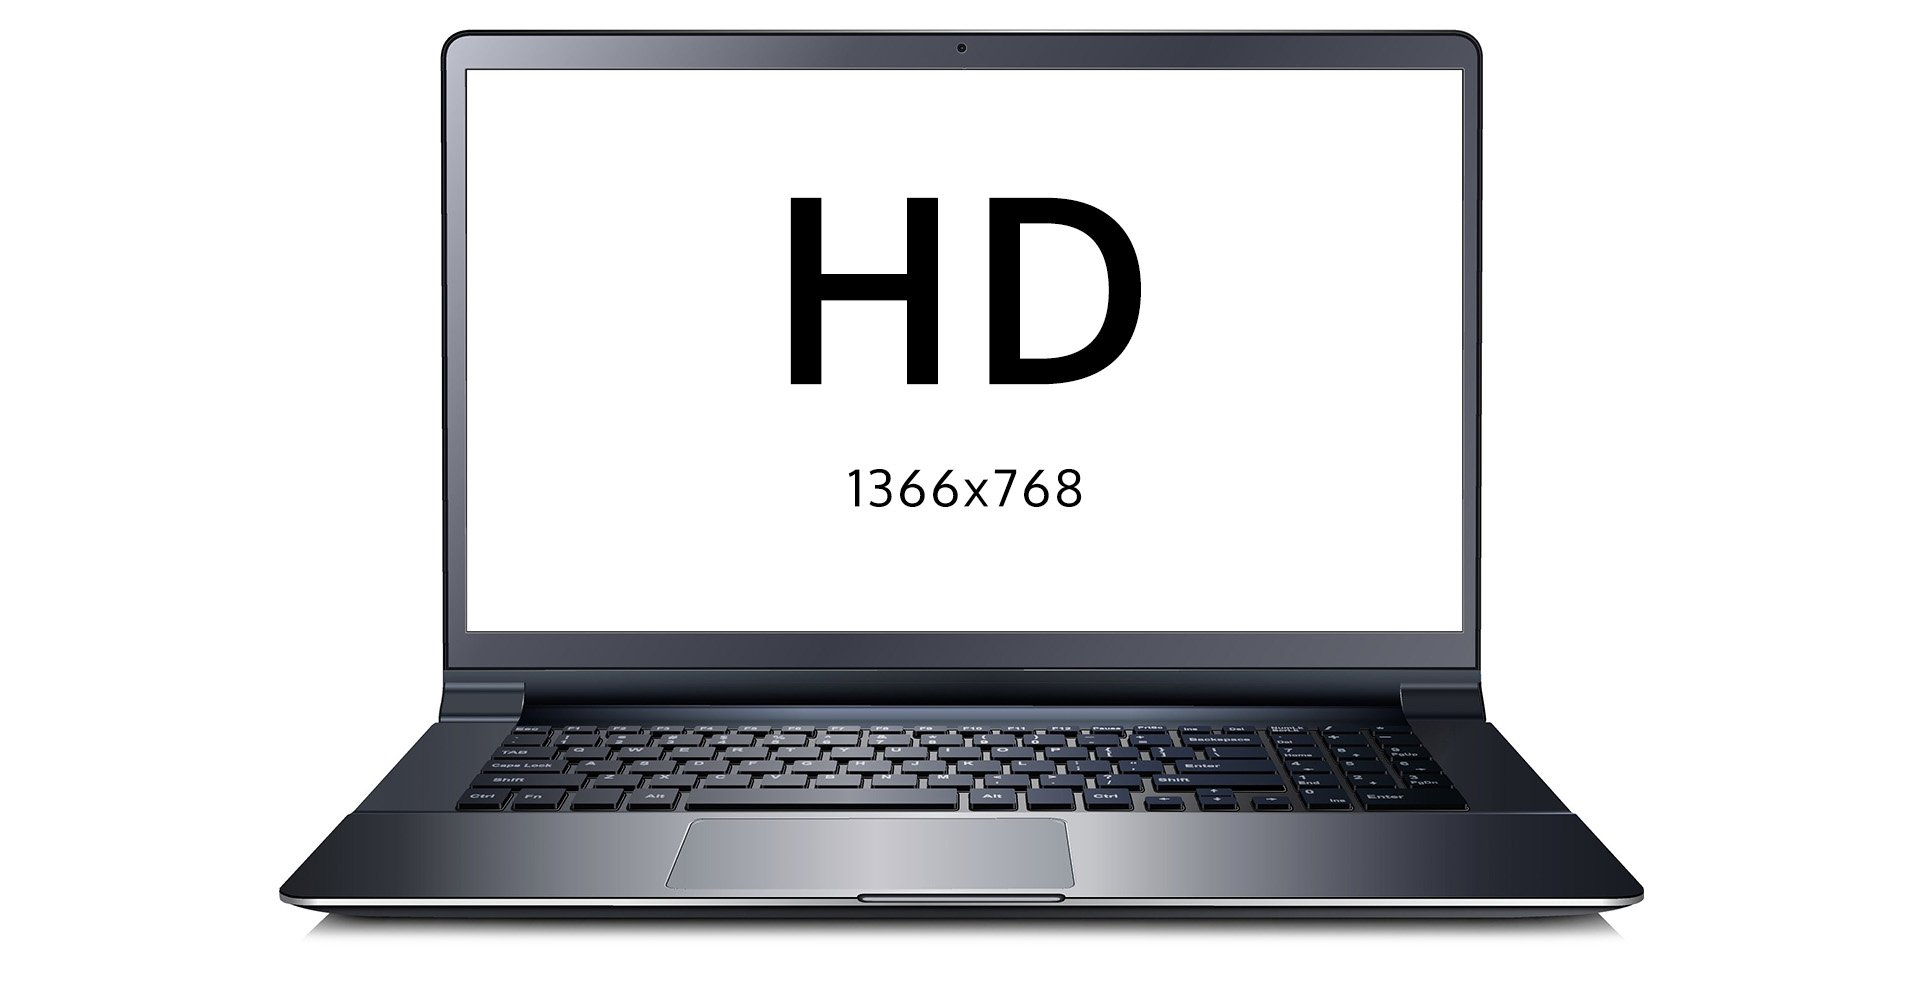 Fujitsu LifeBook A357 (S26391K425V300) 4 GB RAM/ 256 GB SSD/ 2TB HDD/ Windows 10 Pro                             HD 1366x768 resolutsioon